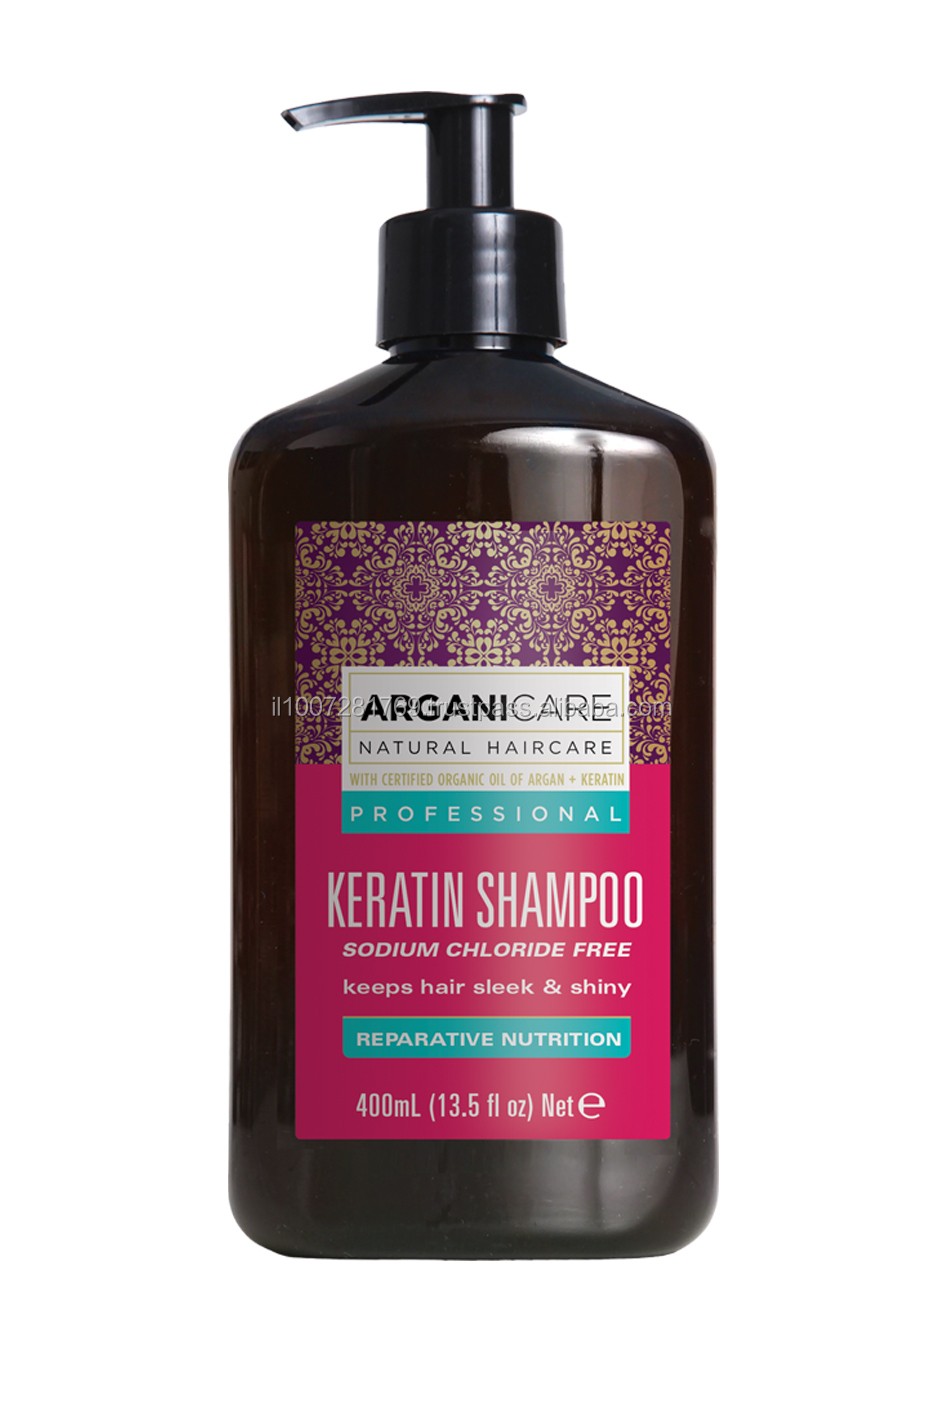 Shampoo keratin sodium chloride free - 400 ml - keeps hair sleek & shiny